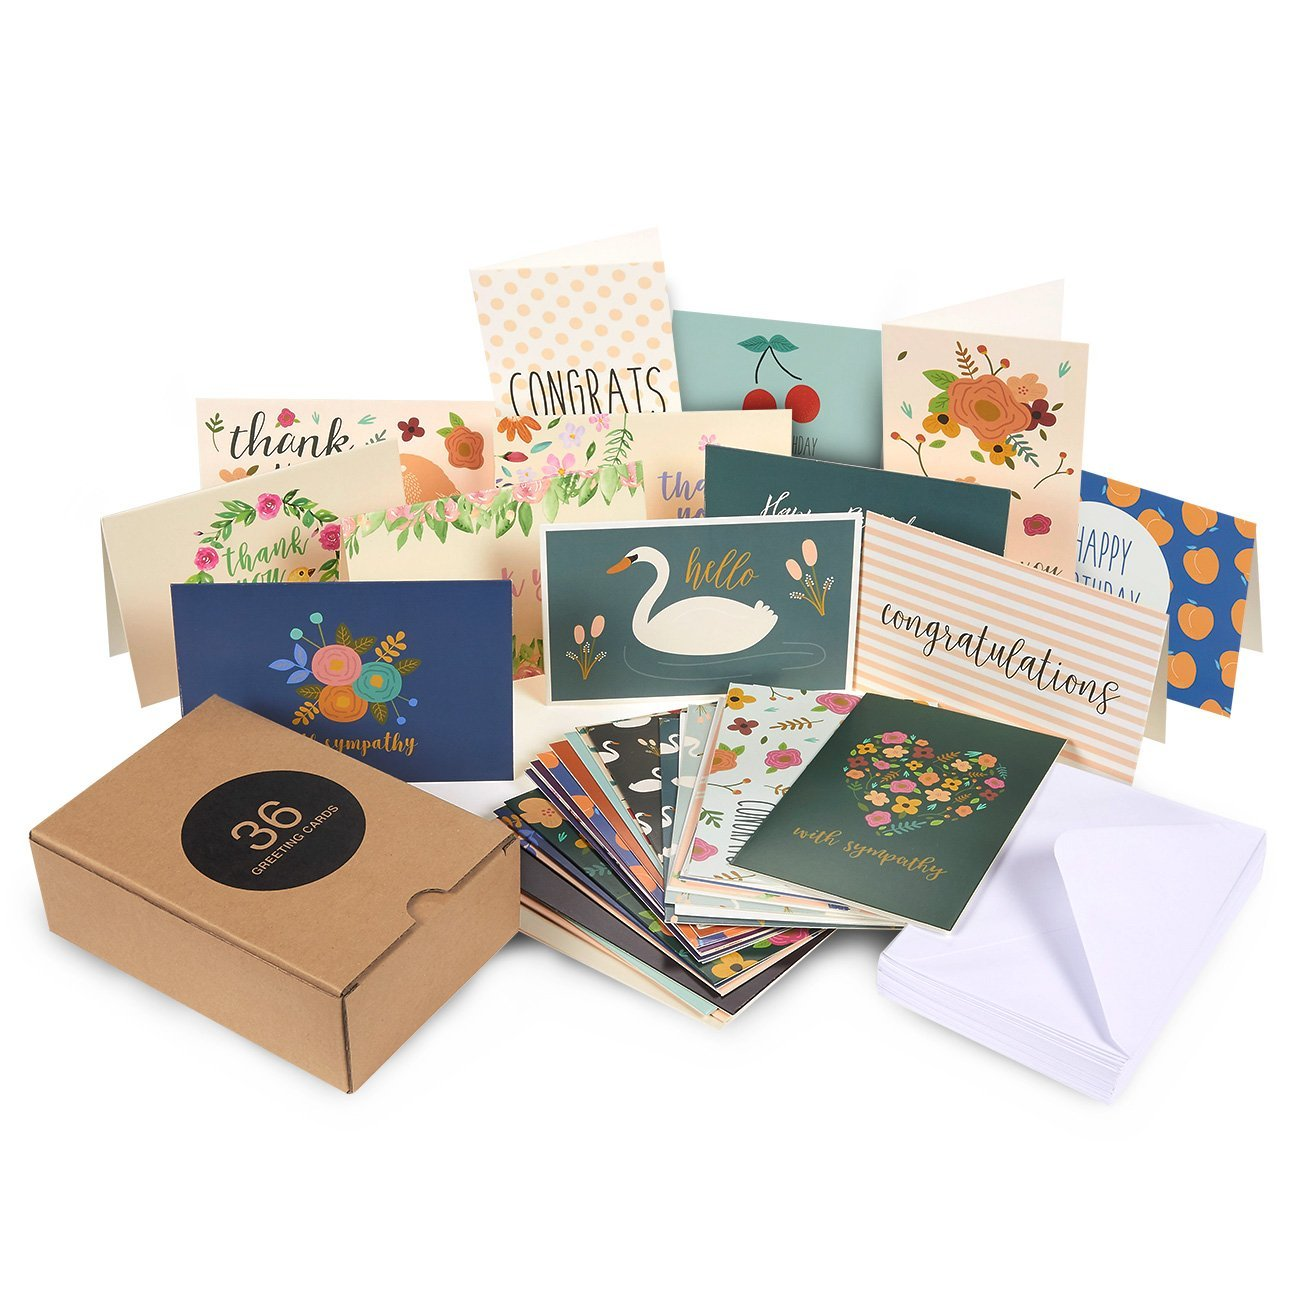 All Occasion Greeting Cards - Includes Assorted Happy Birthday, Congratulations, Sympathy, Hello, Thank You Cards